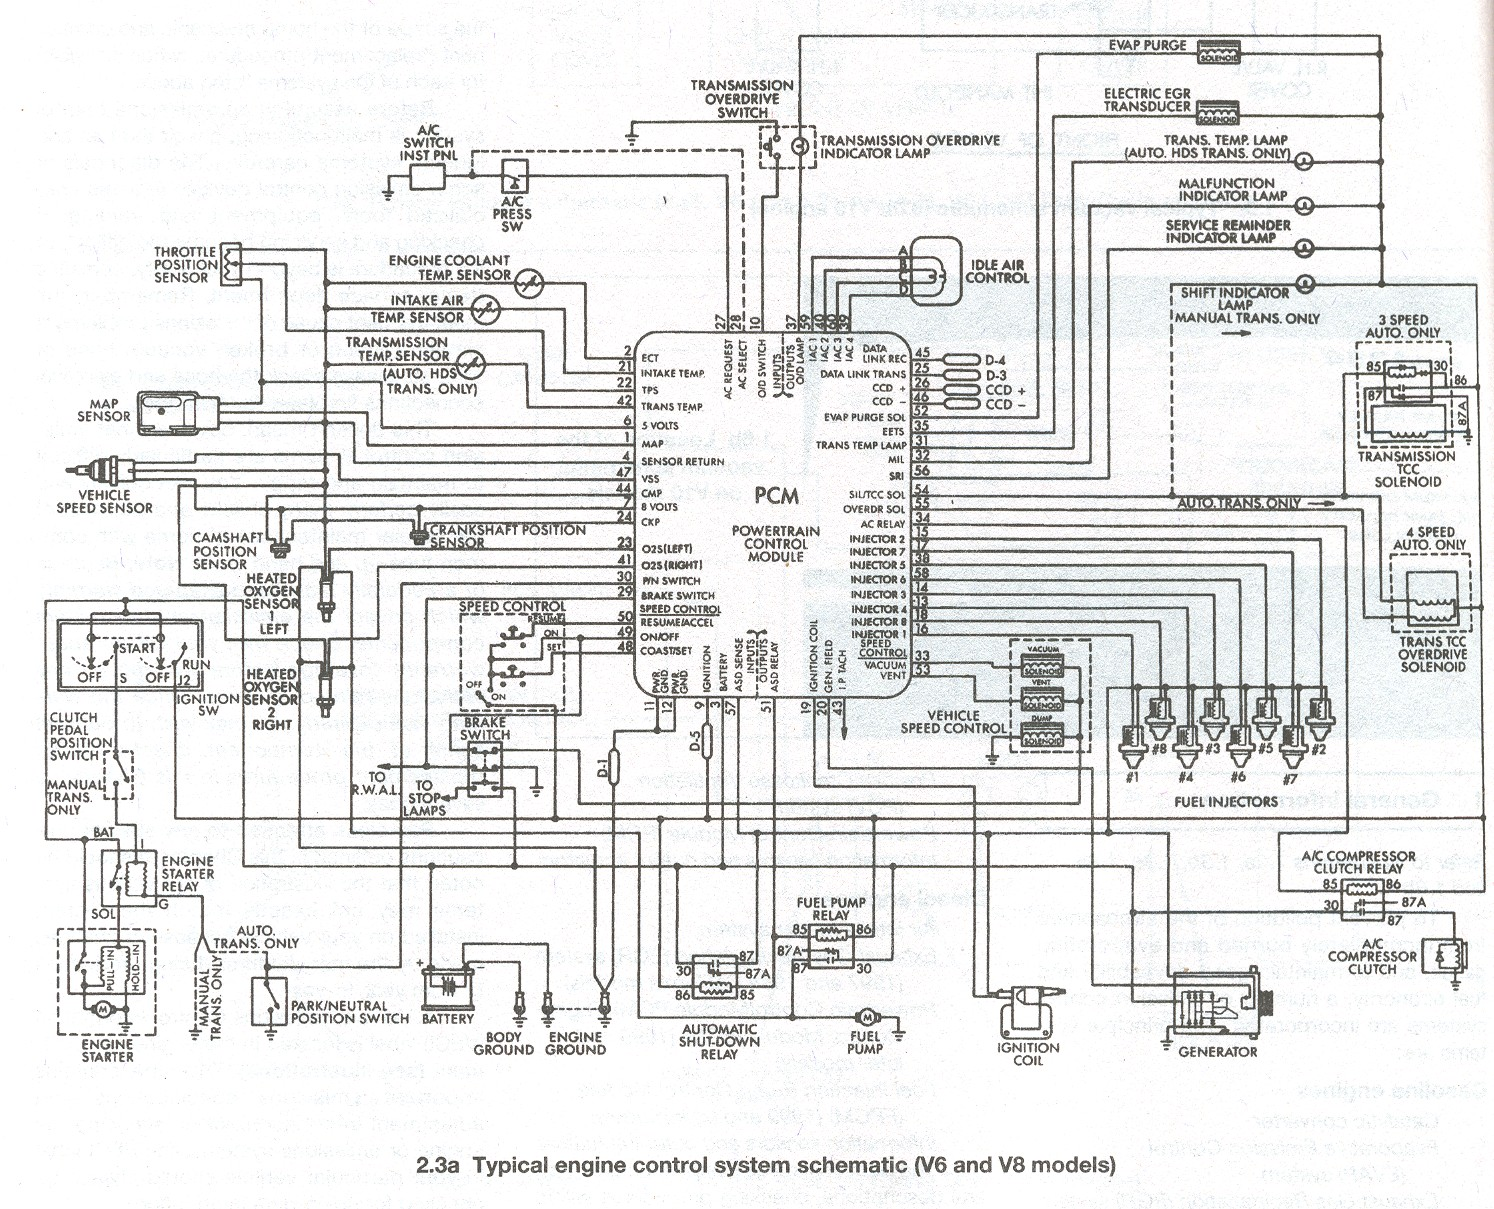 ignition schematic on a 1975 dodge dart